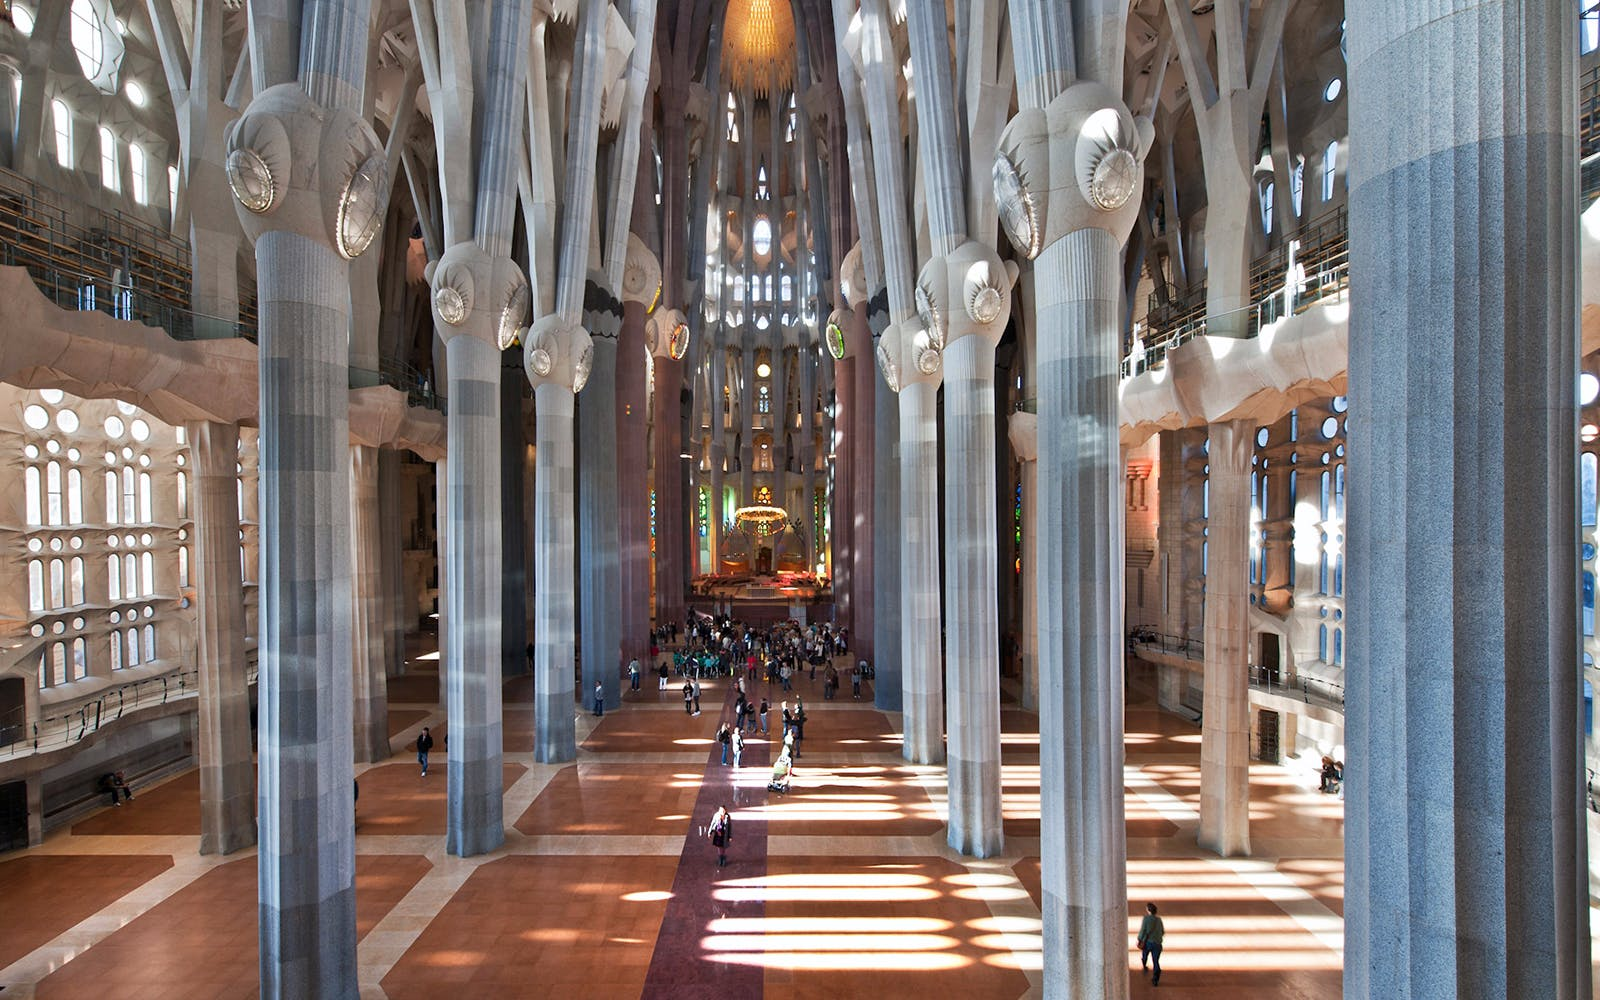 Guided Tour of Sagrada Familia with Skip the Line Access